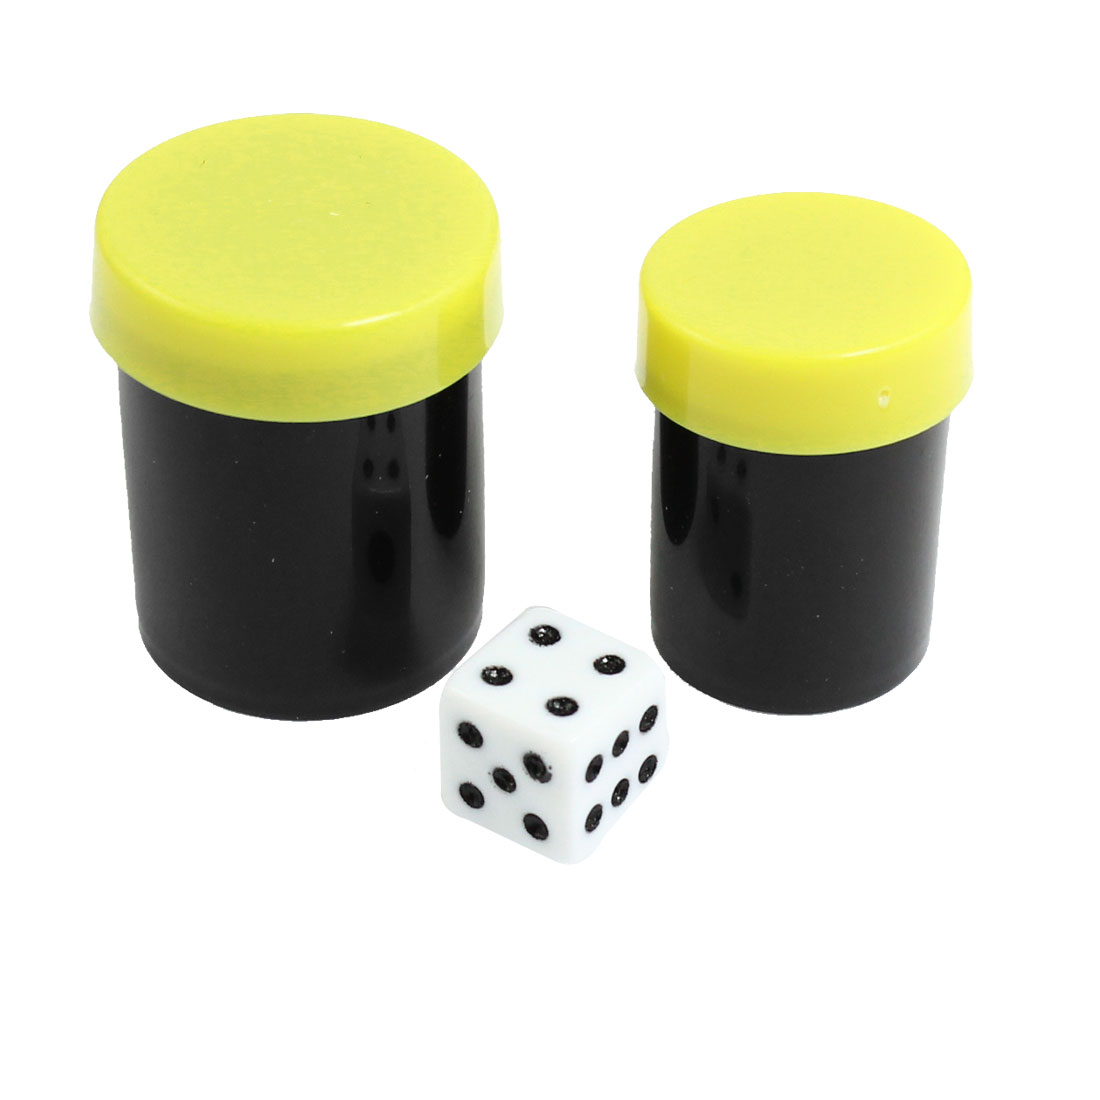 Stage Magician Party Magic Dice Tricks Prop and Training Set